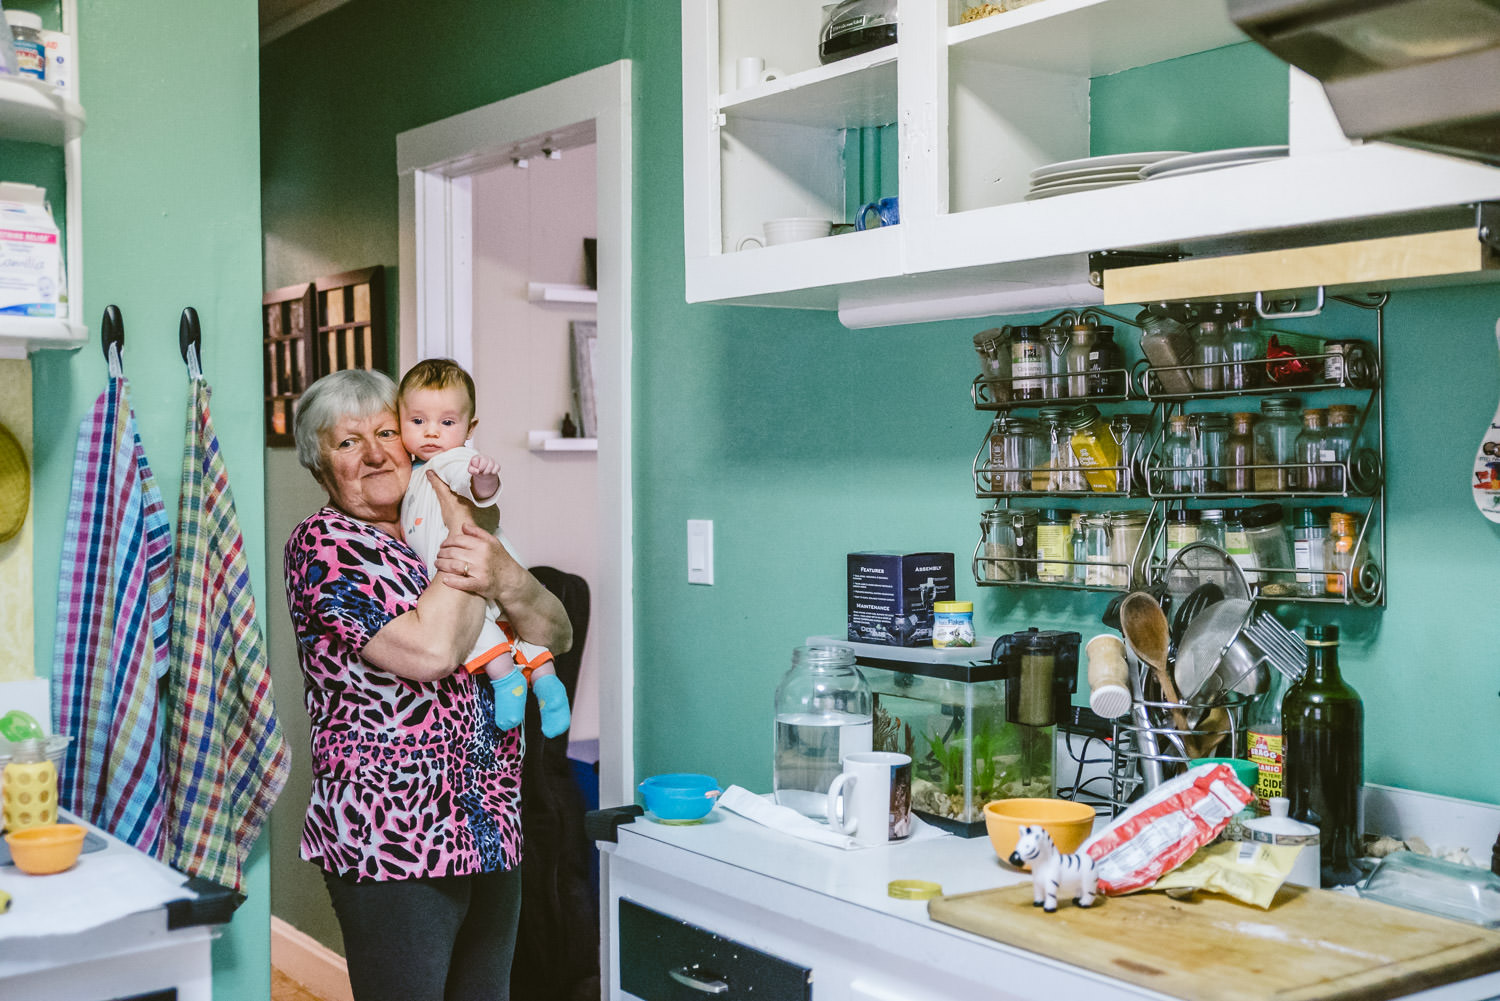 A grandmother holds her grandson in the kitchen.